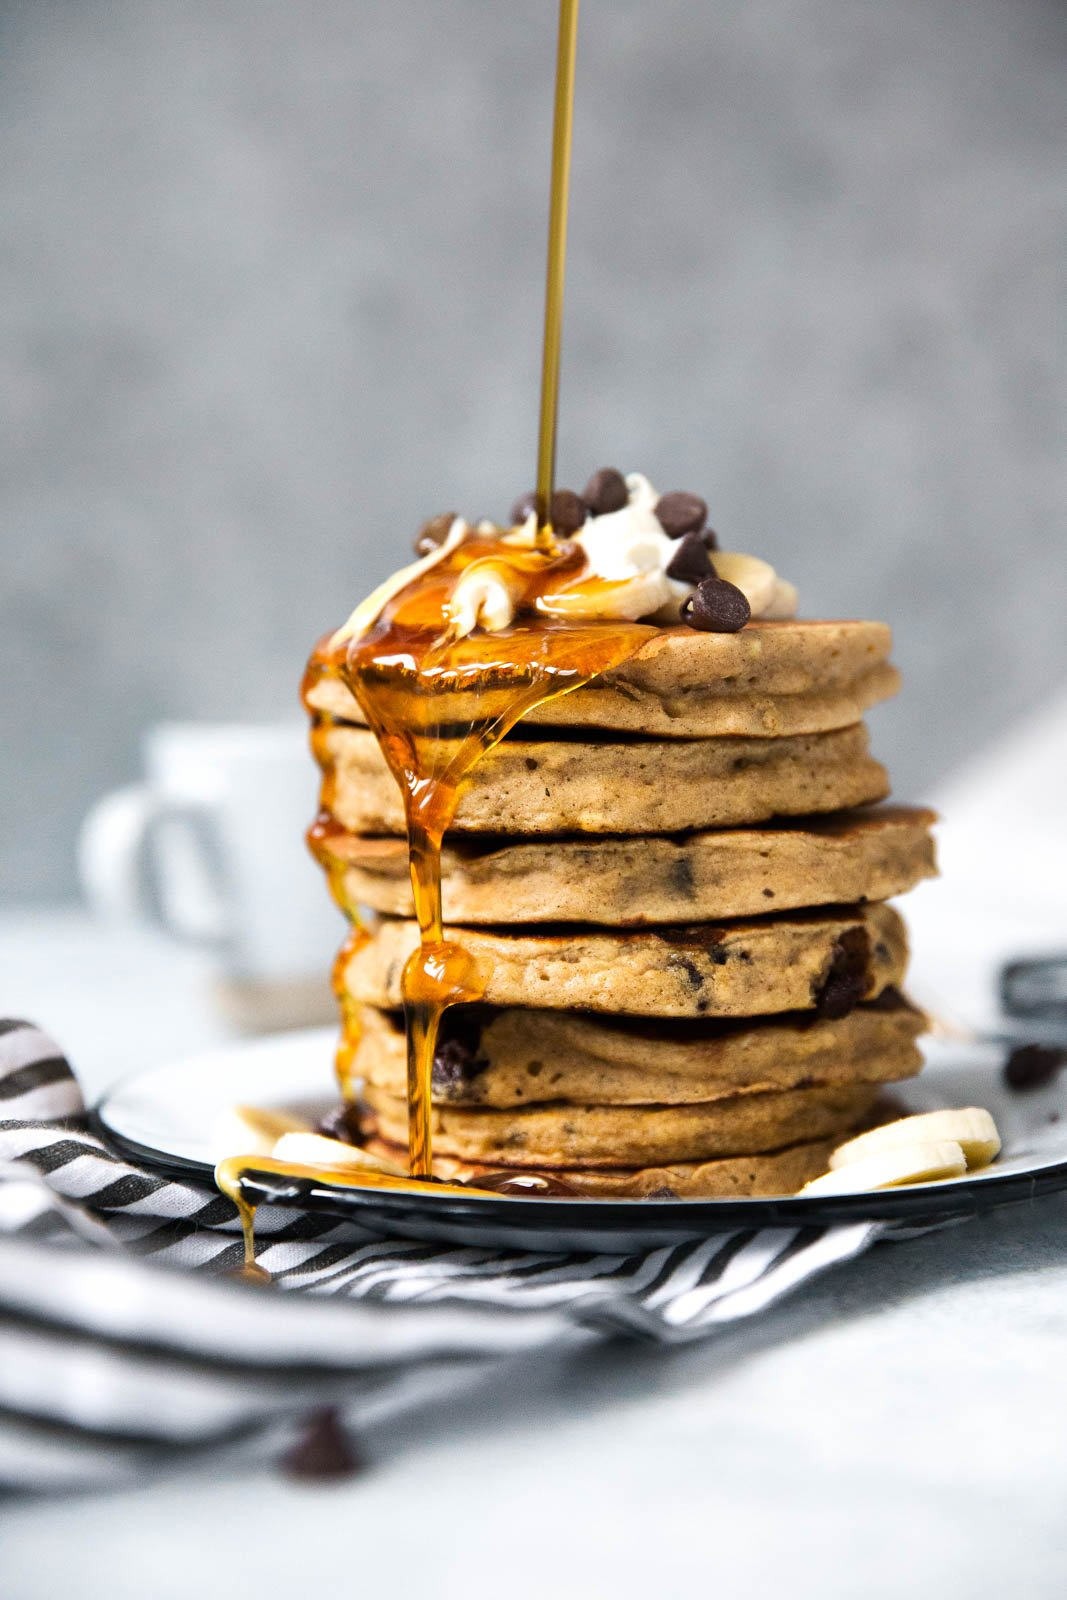 banana bread pancakes in a stack being drizzled with maple syrup